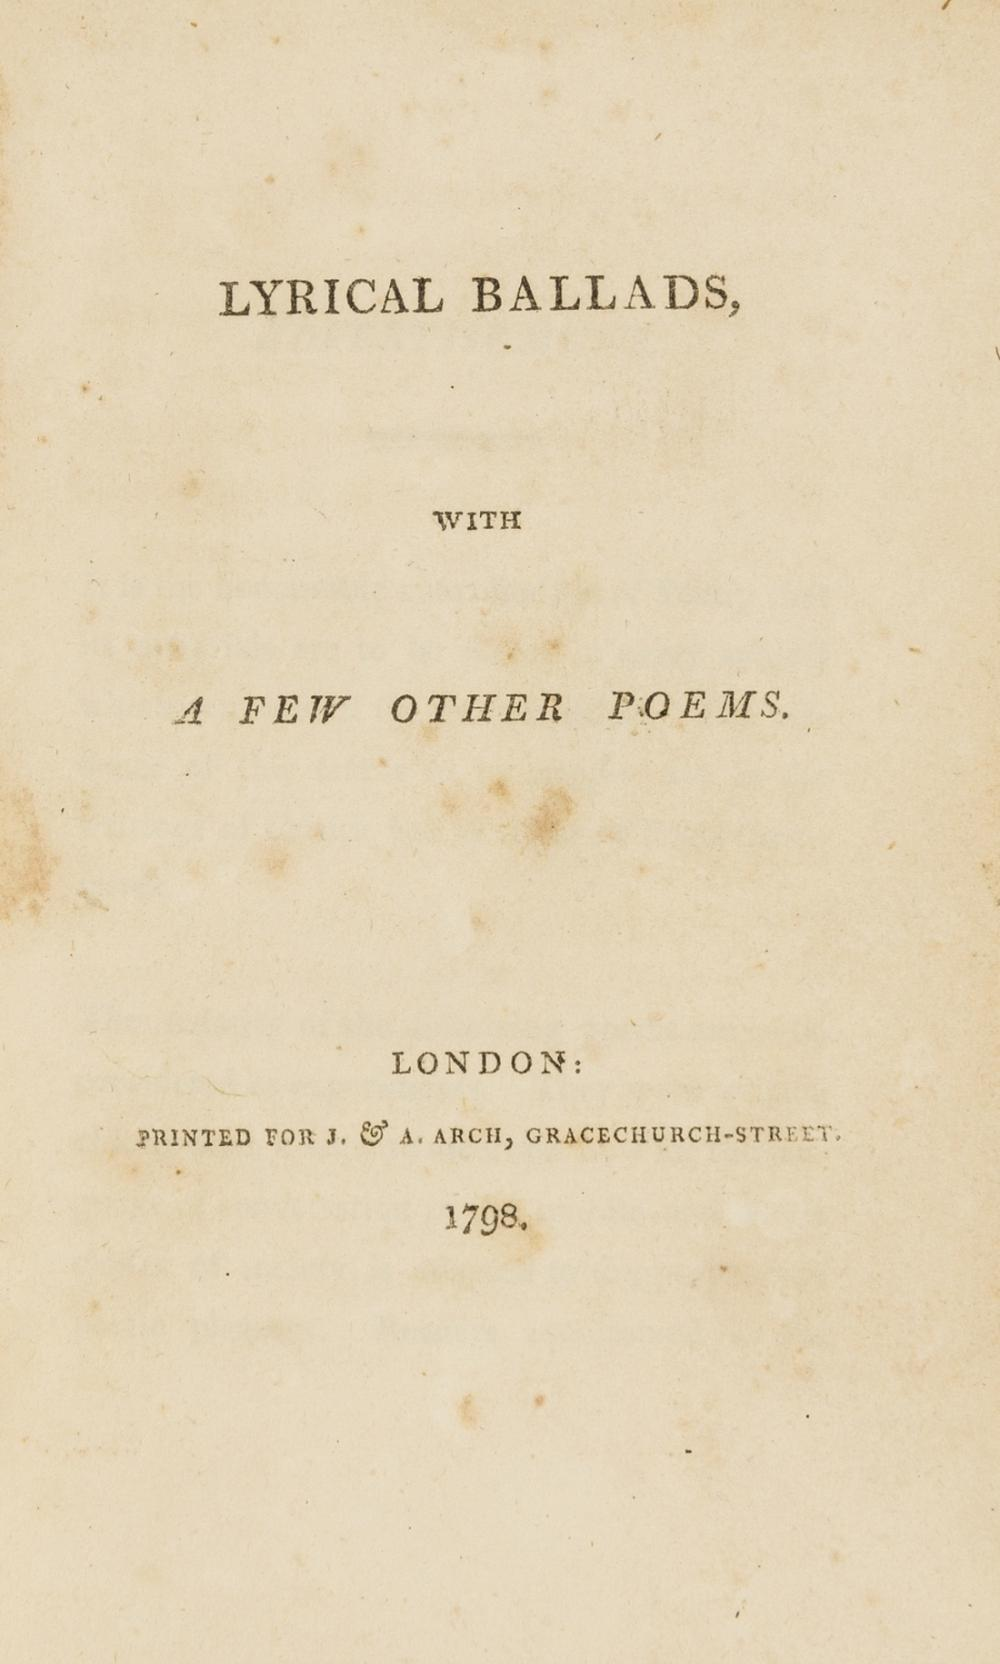 [Wordsworth (William) and Samuel Taylor Coleridge.] Lyrical Ballads, with a few other poems, first edition, second issue, for J. & A. Arch, 1798.